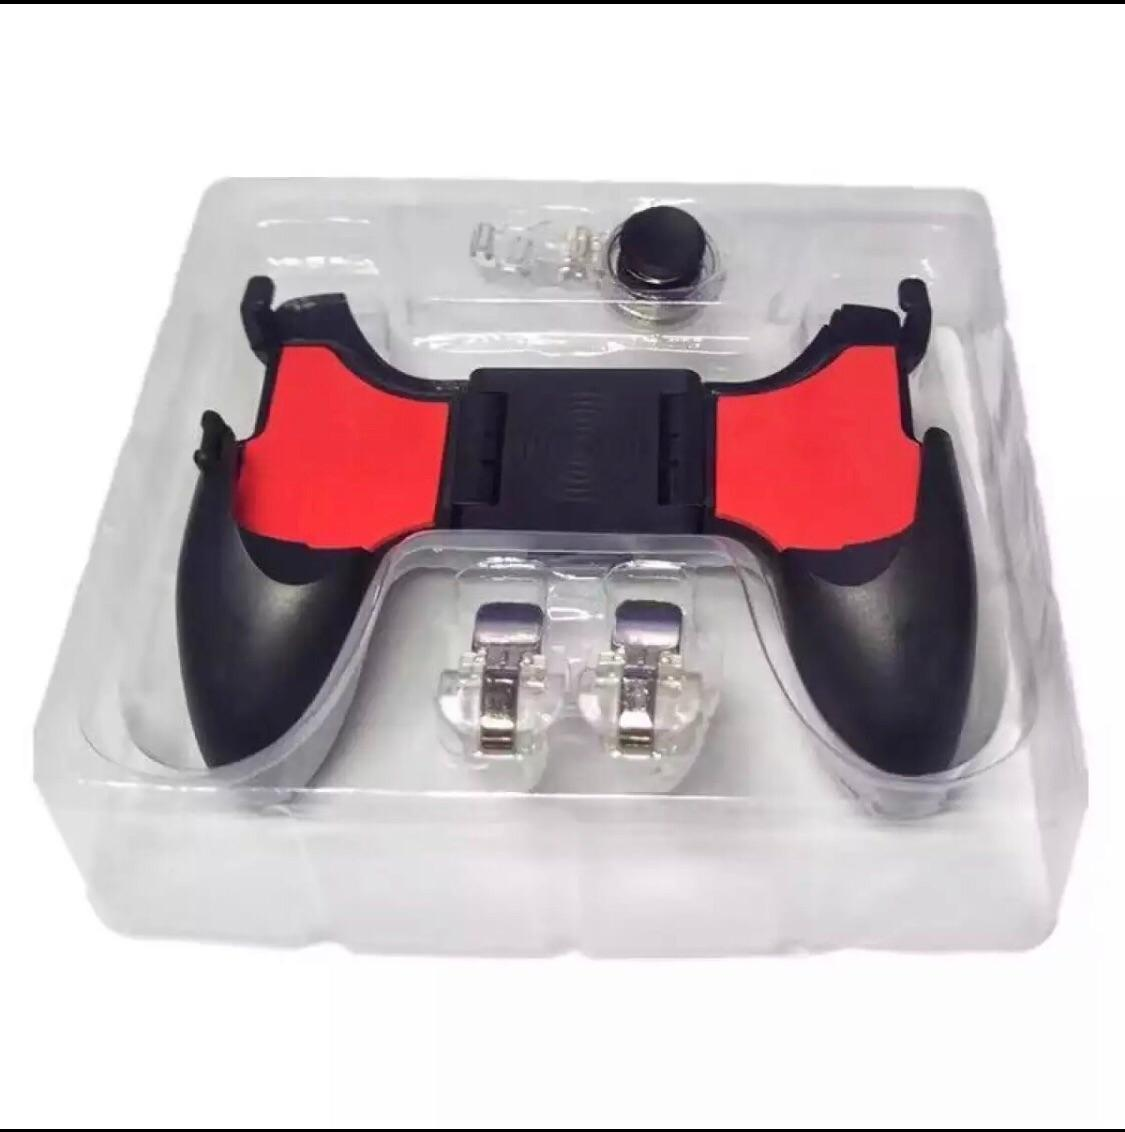 5in1 Portable Gamepad With Joystick For Universal Phone By Mking Shop.